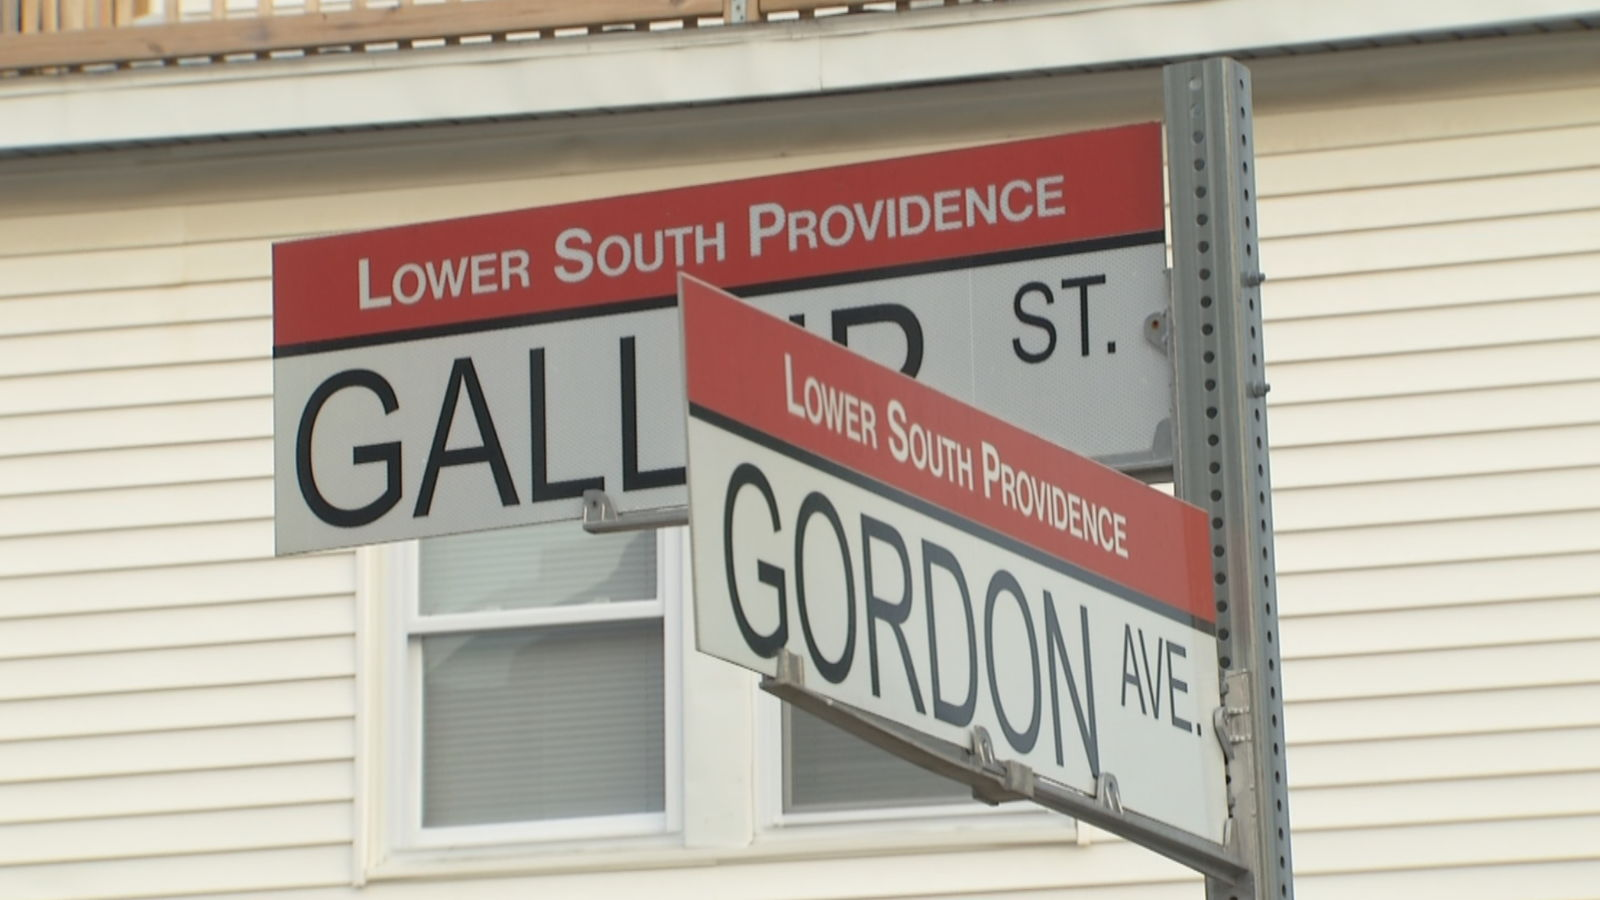 Providence police say a man was stabbed in the area of Gallup Street and Gordon Avenue, Thursday, July 30, 2020. (WJAR)